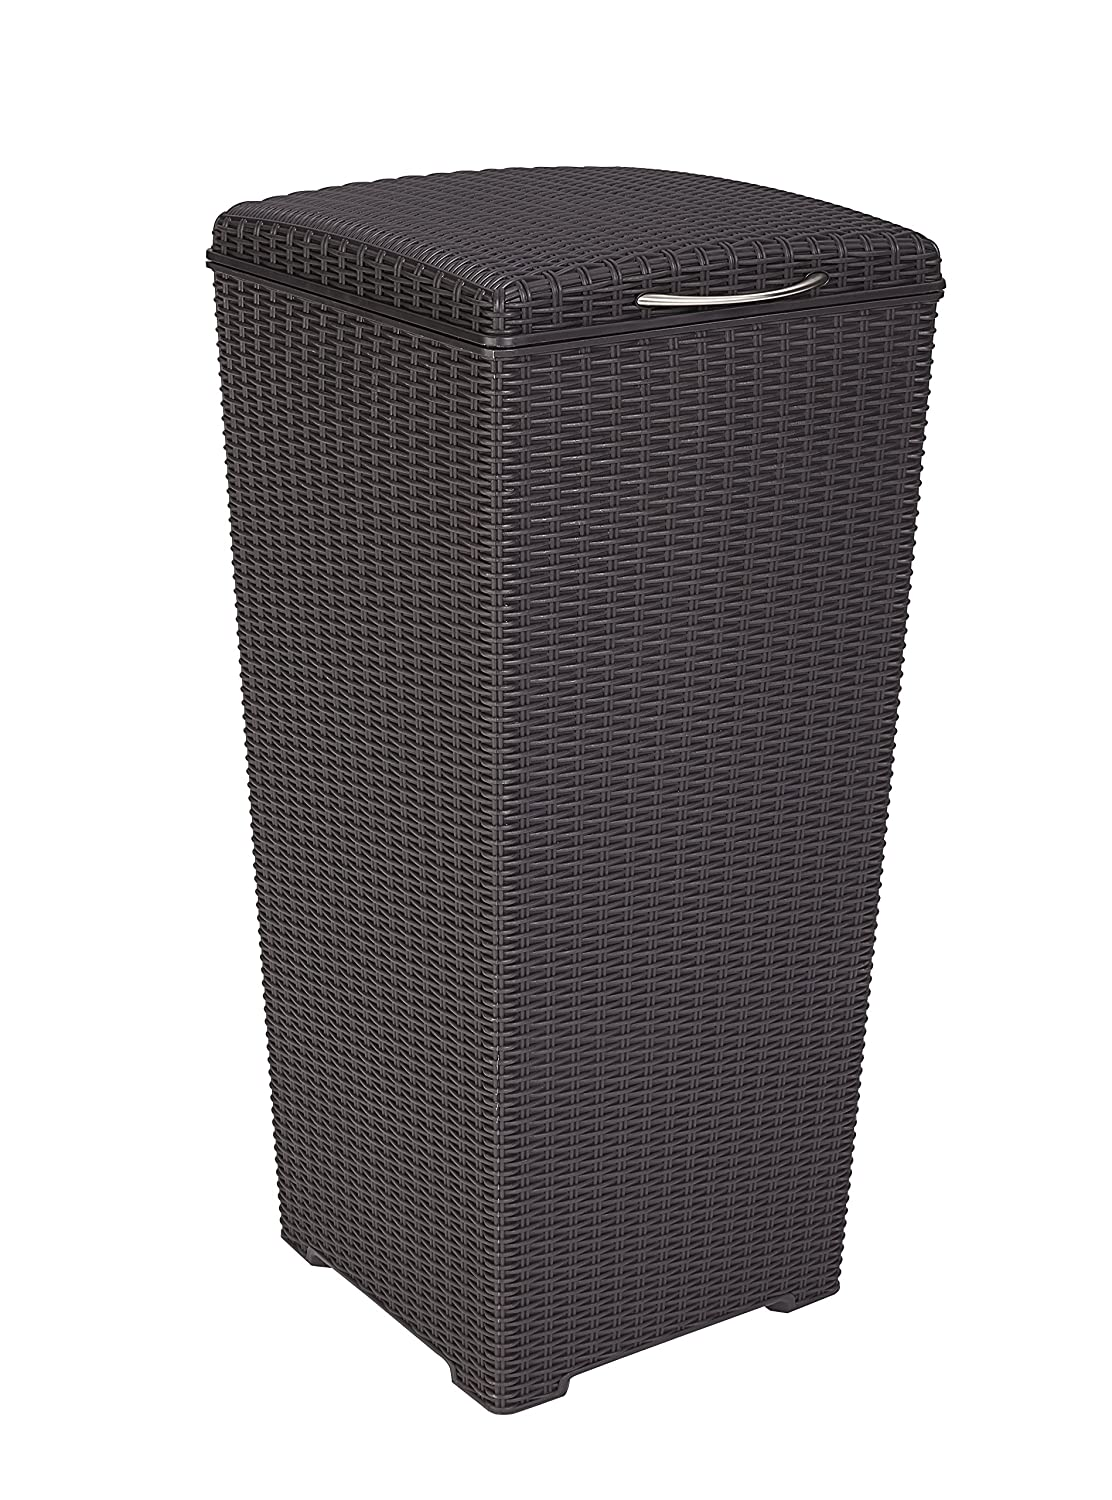 Keter Pacific 30 Gal. Outdoor Resin Wicker Waste Basket Trash Can with Liner